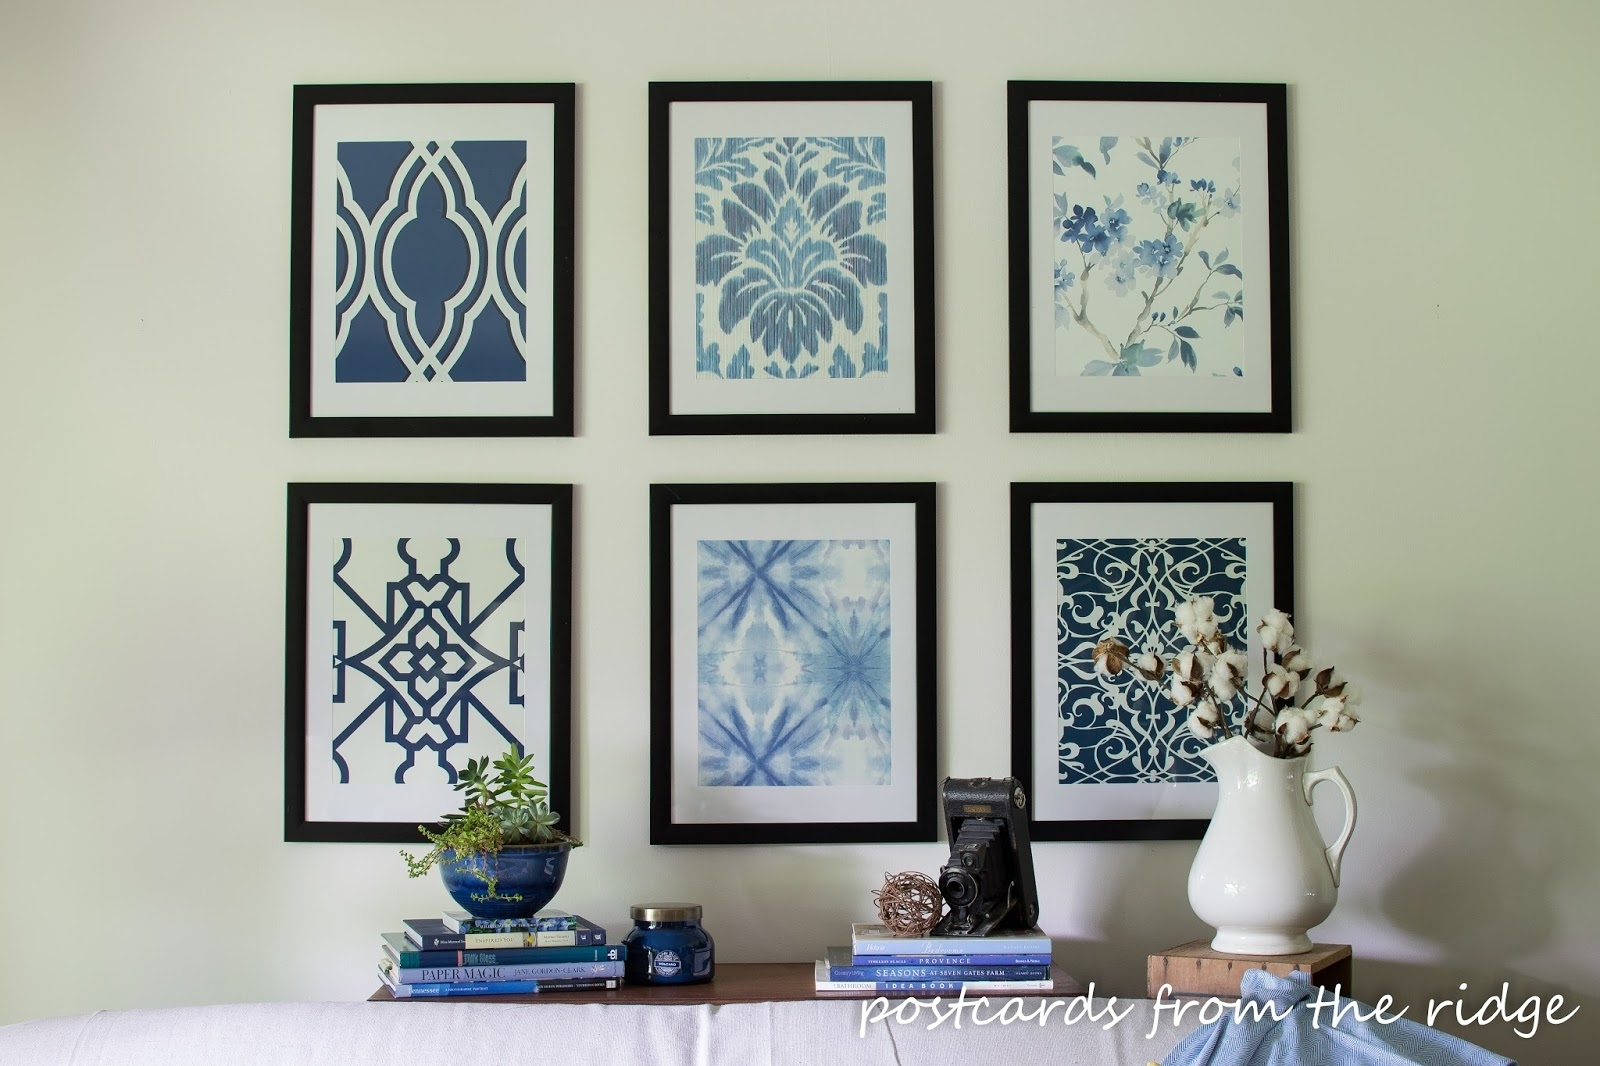 Affordable Diy Artwork Inspiredpottery Barn ~ Rock Your Knockoff Regarding 2017 Affordable Wall Art (View 2 of 20)